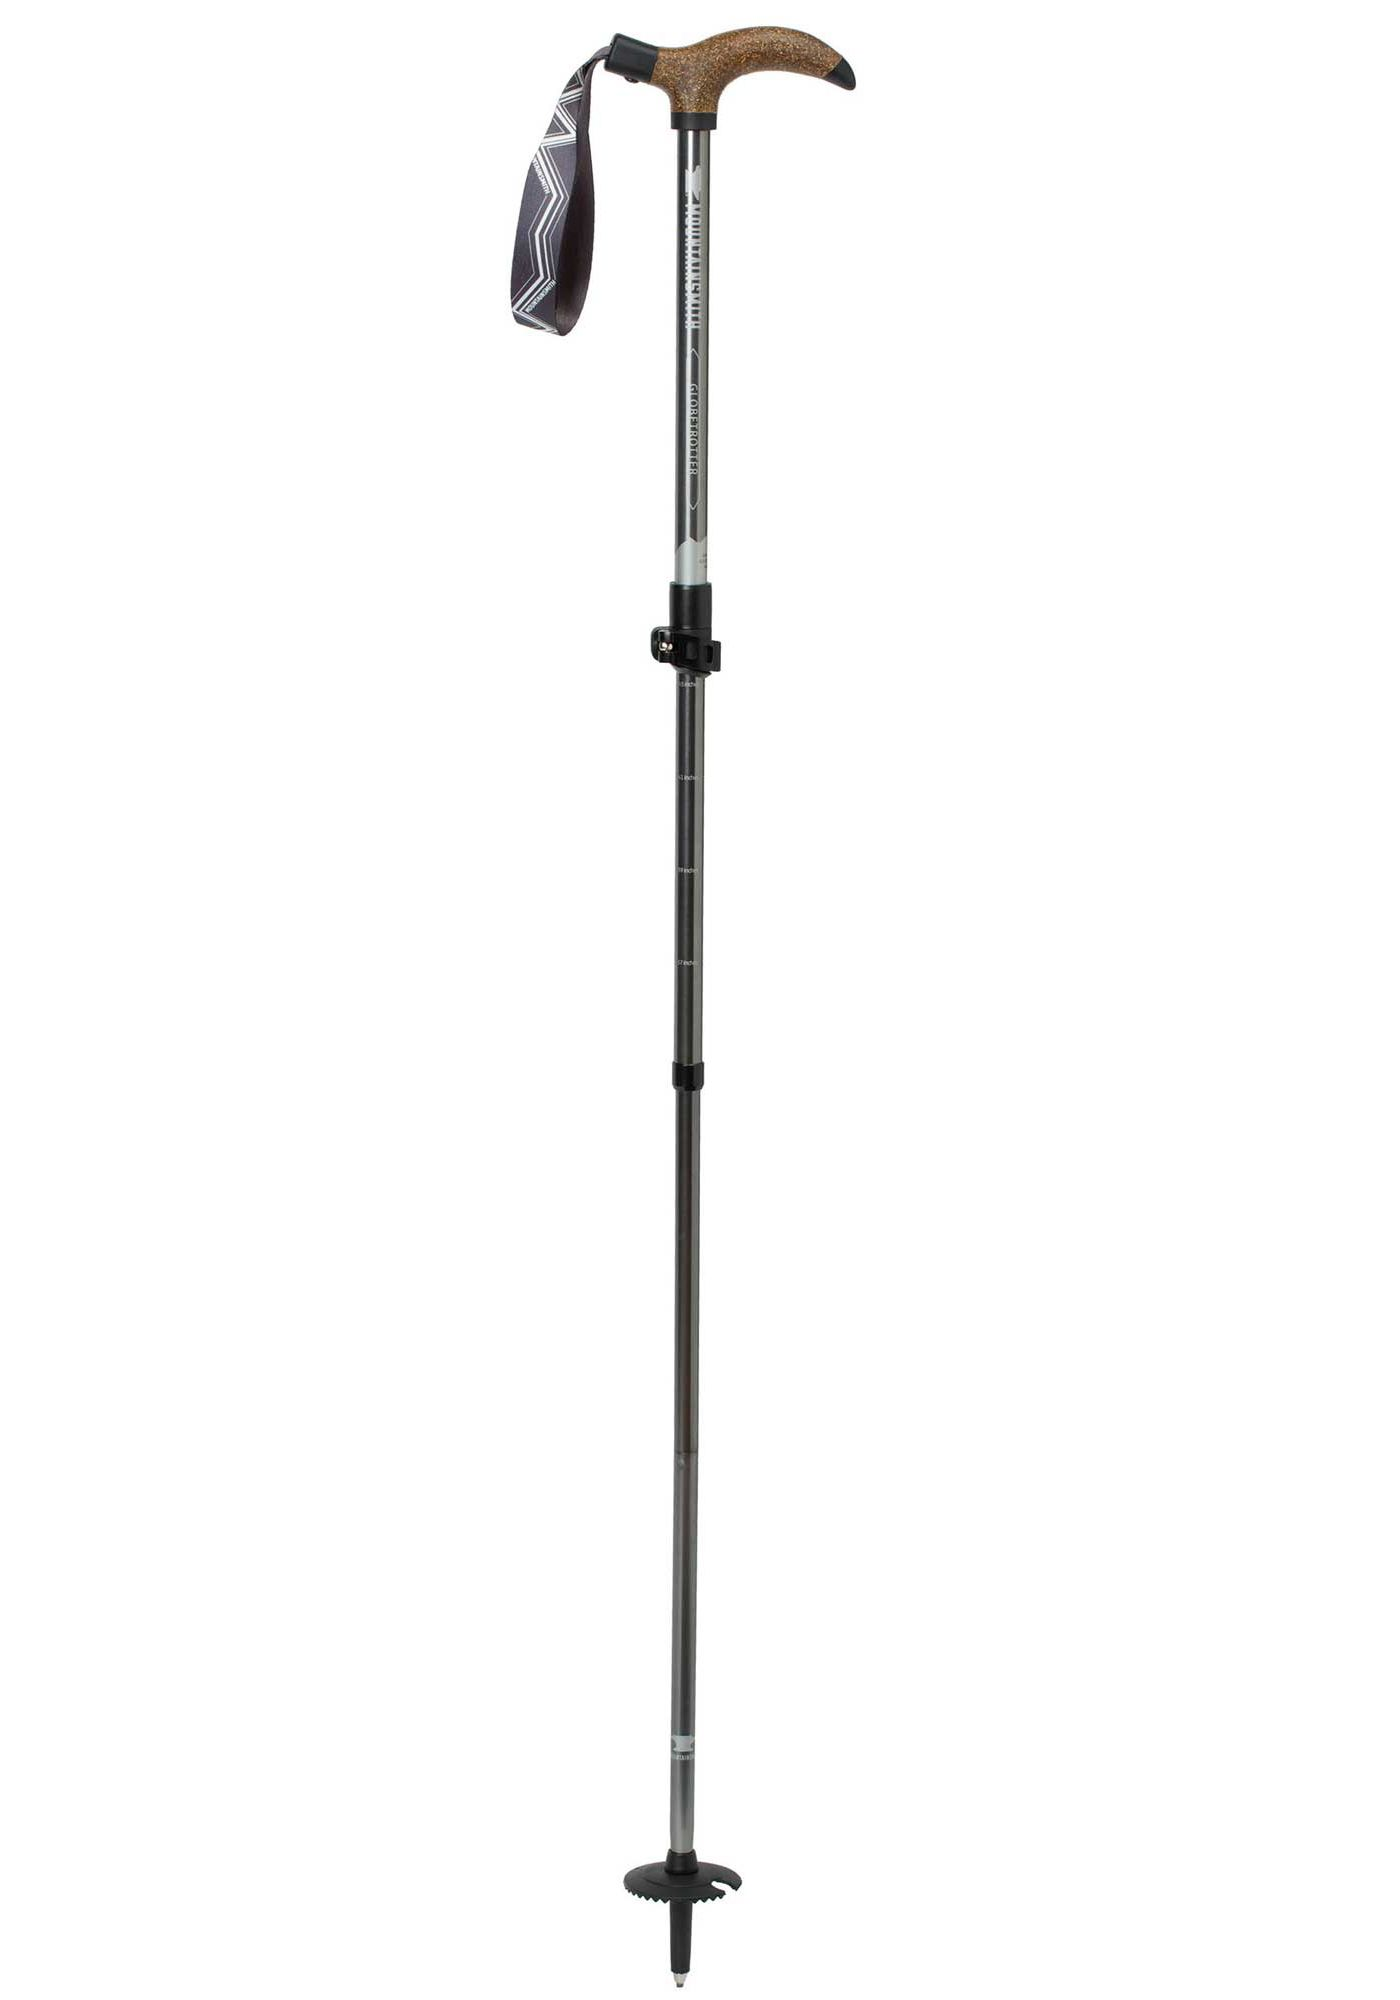 Mountainsmith Globetrotter Collapsible Trekking Pole